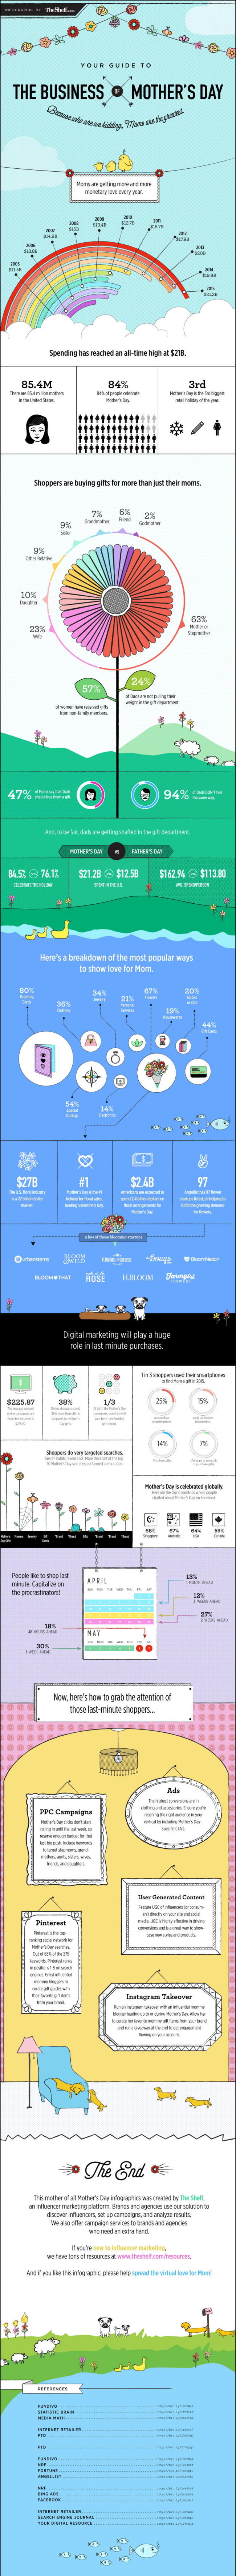 mothers-day-infographic-2016